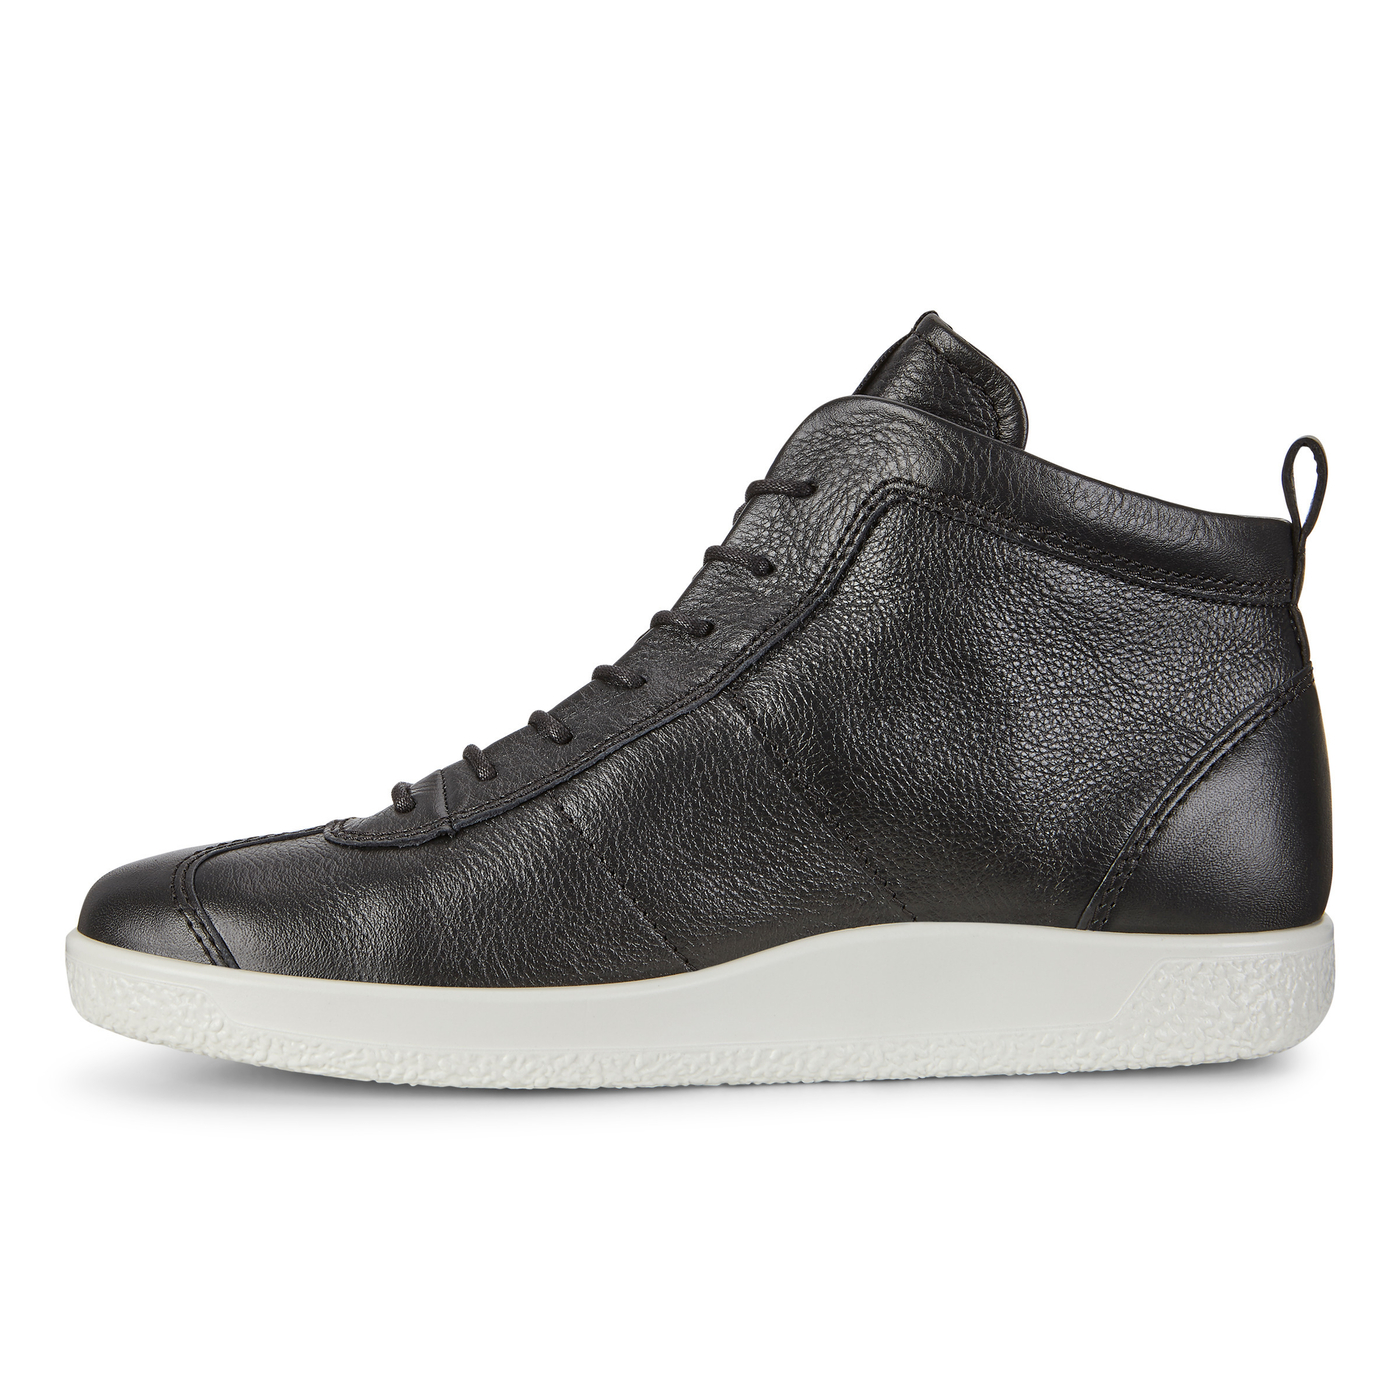 ECCO Mens Soft 1 High Top